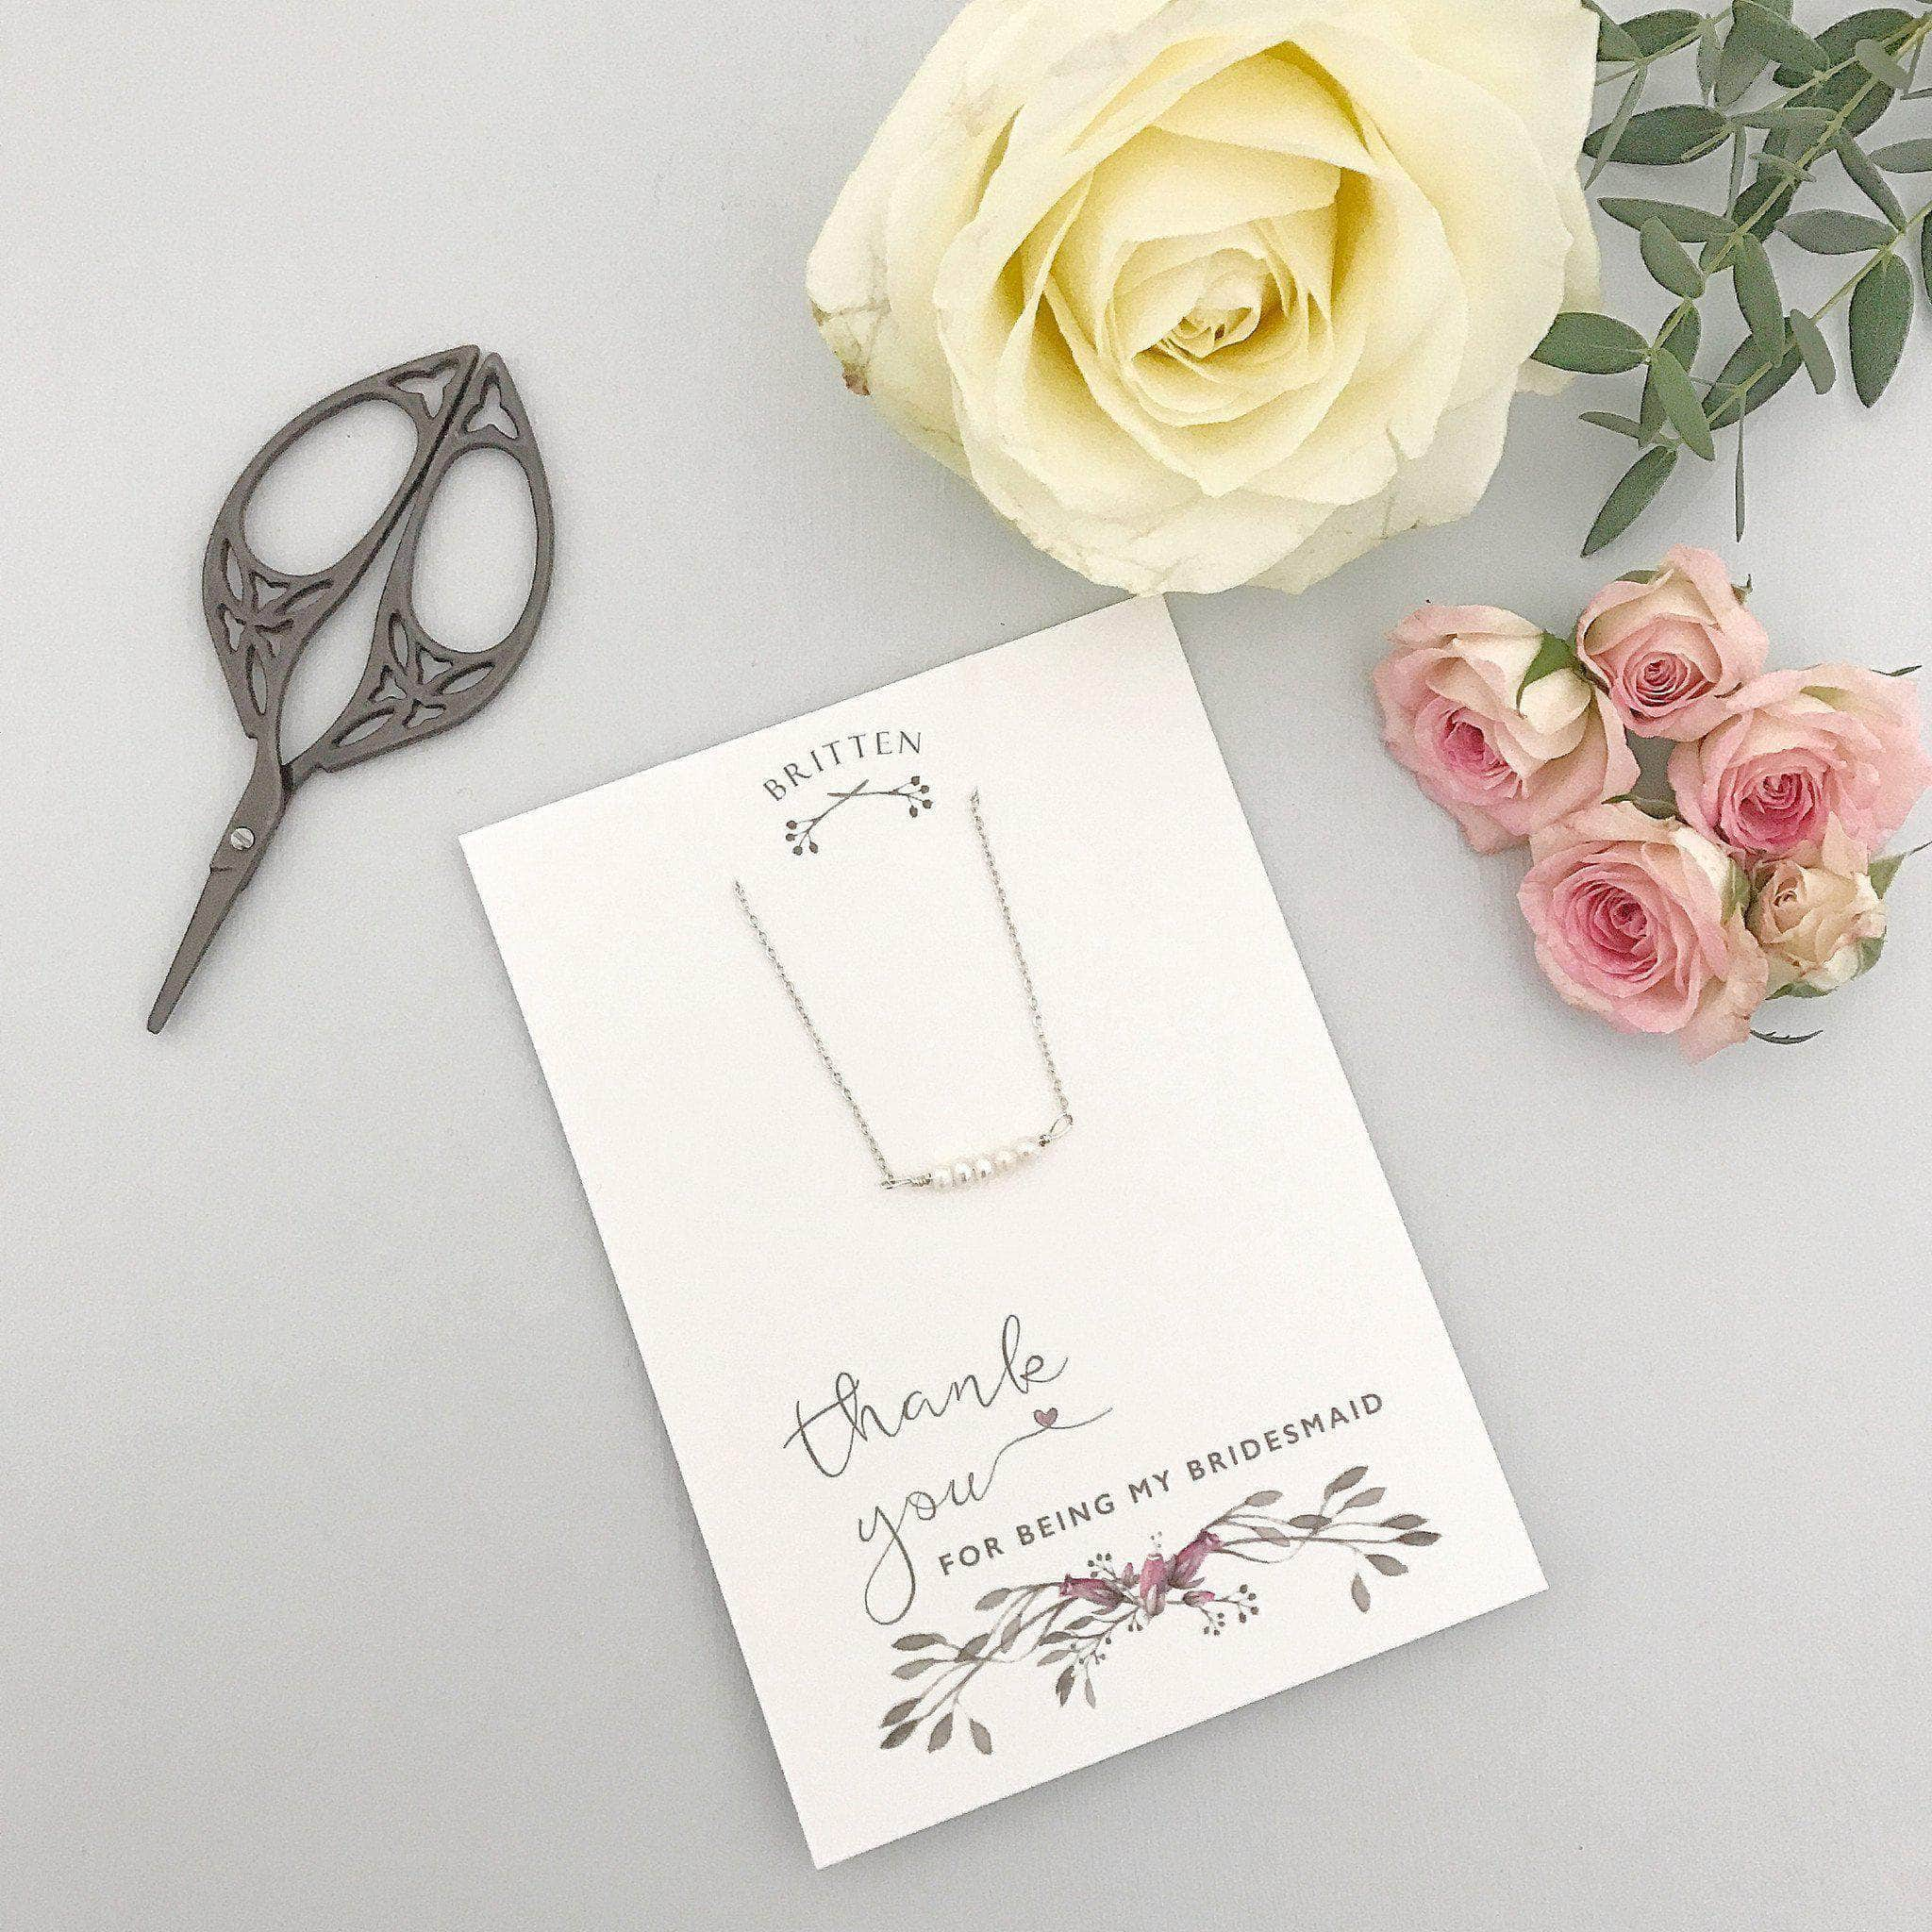 thank you for being my bridesmaid gift necklace